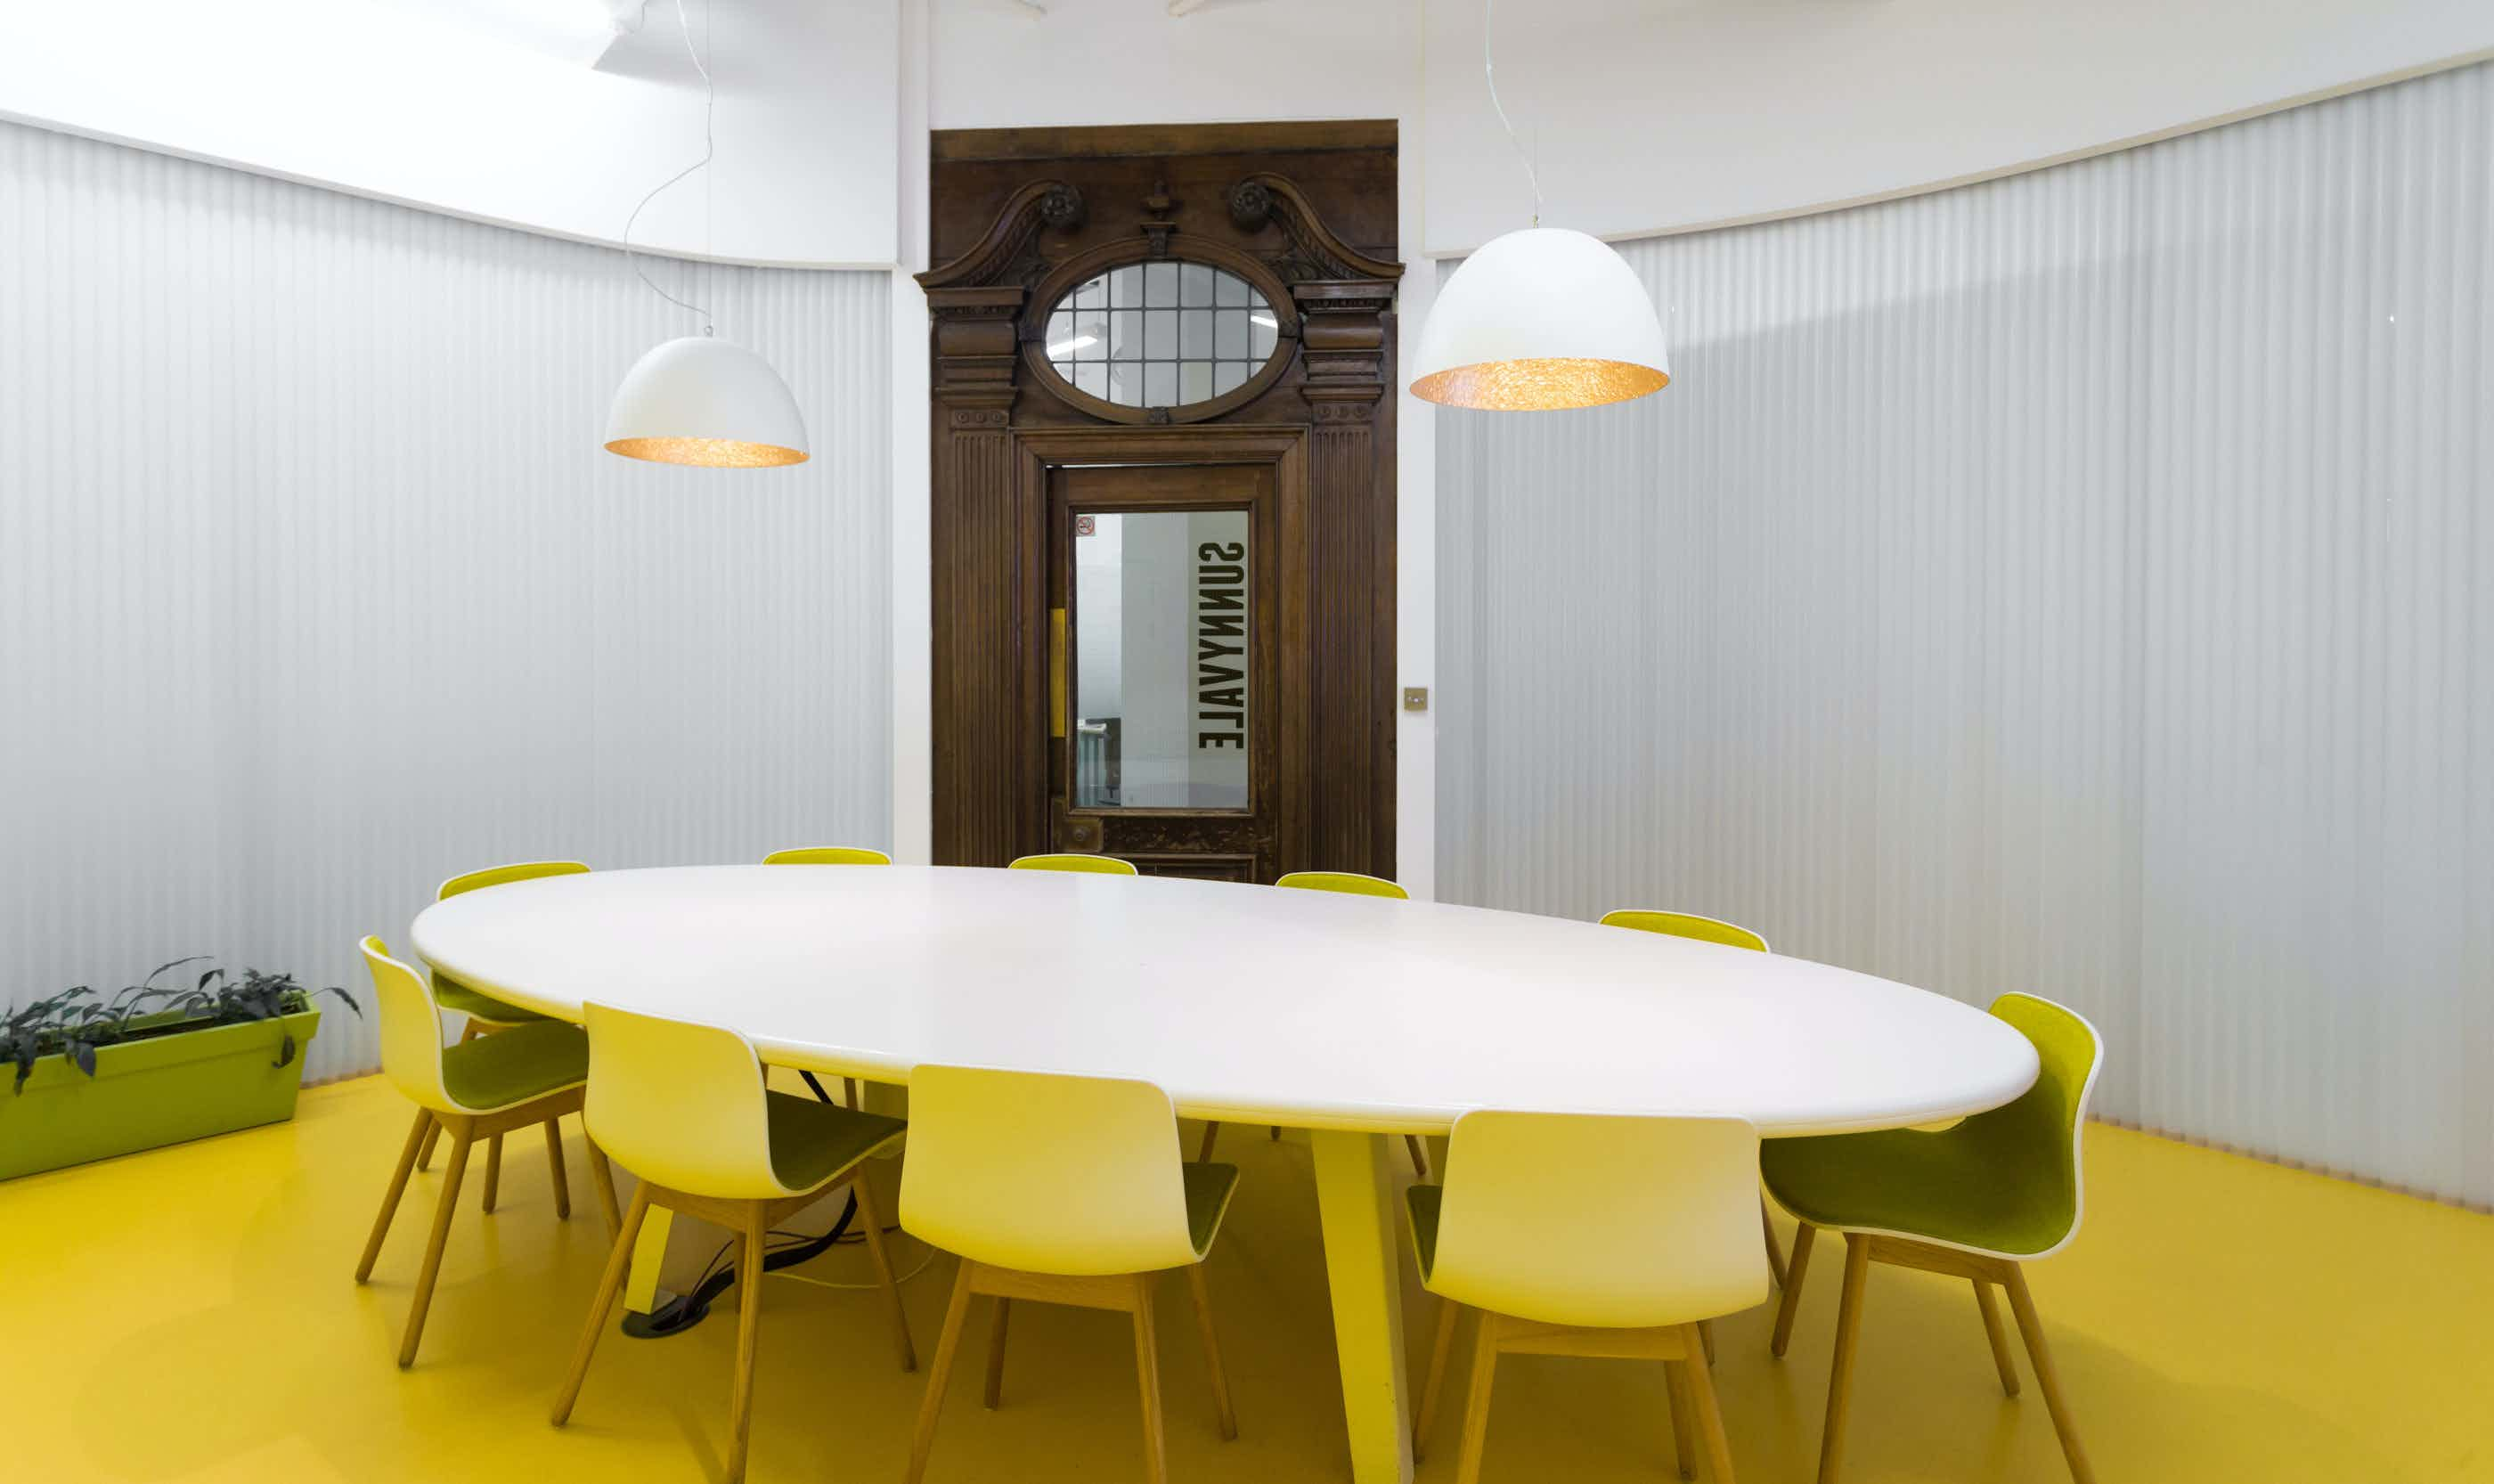 Sunnyvale Meeting Room, Huckletree Shoreditch